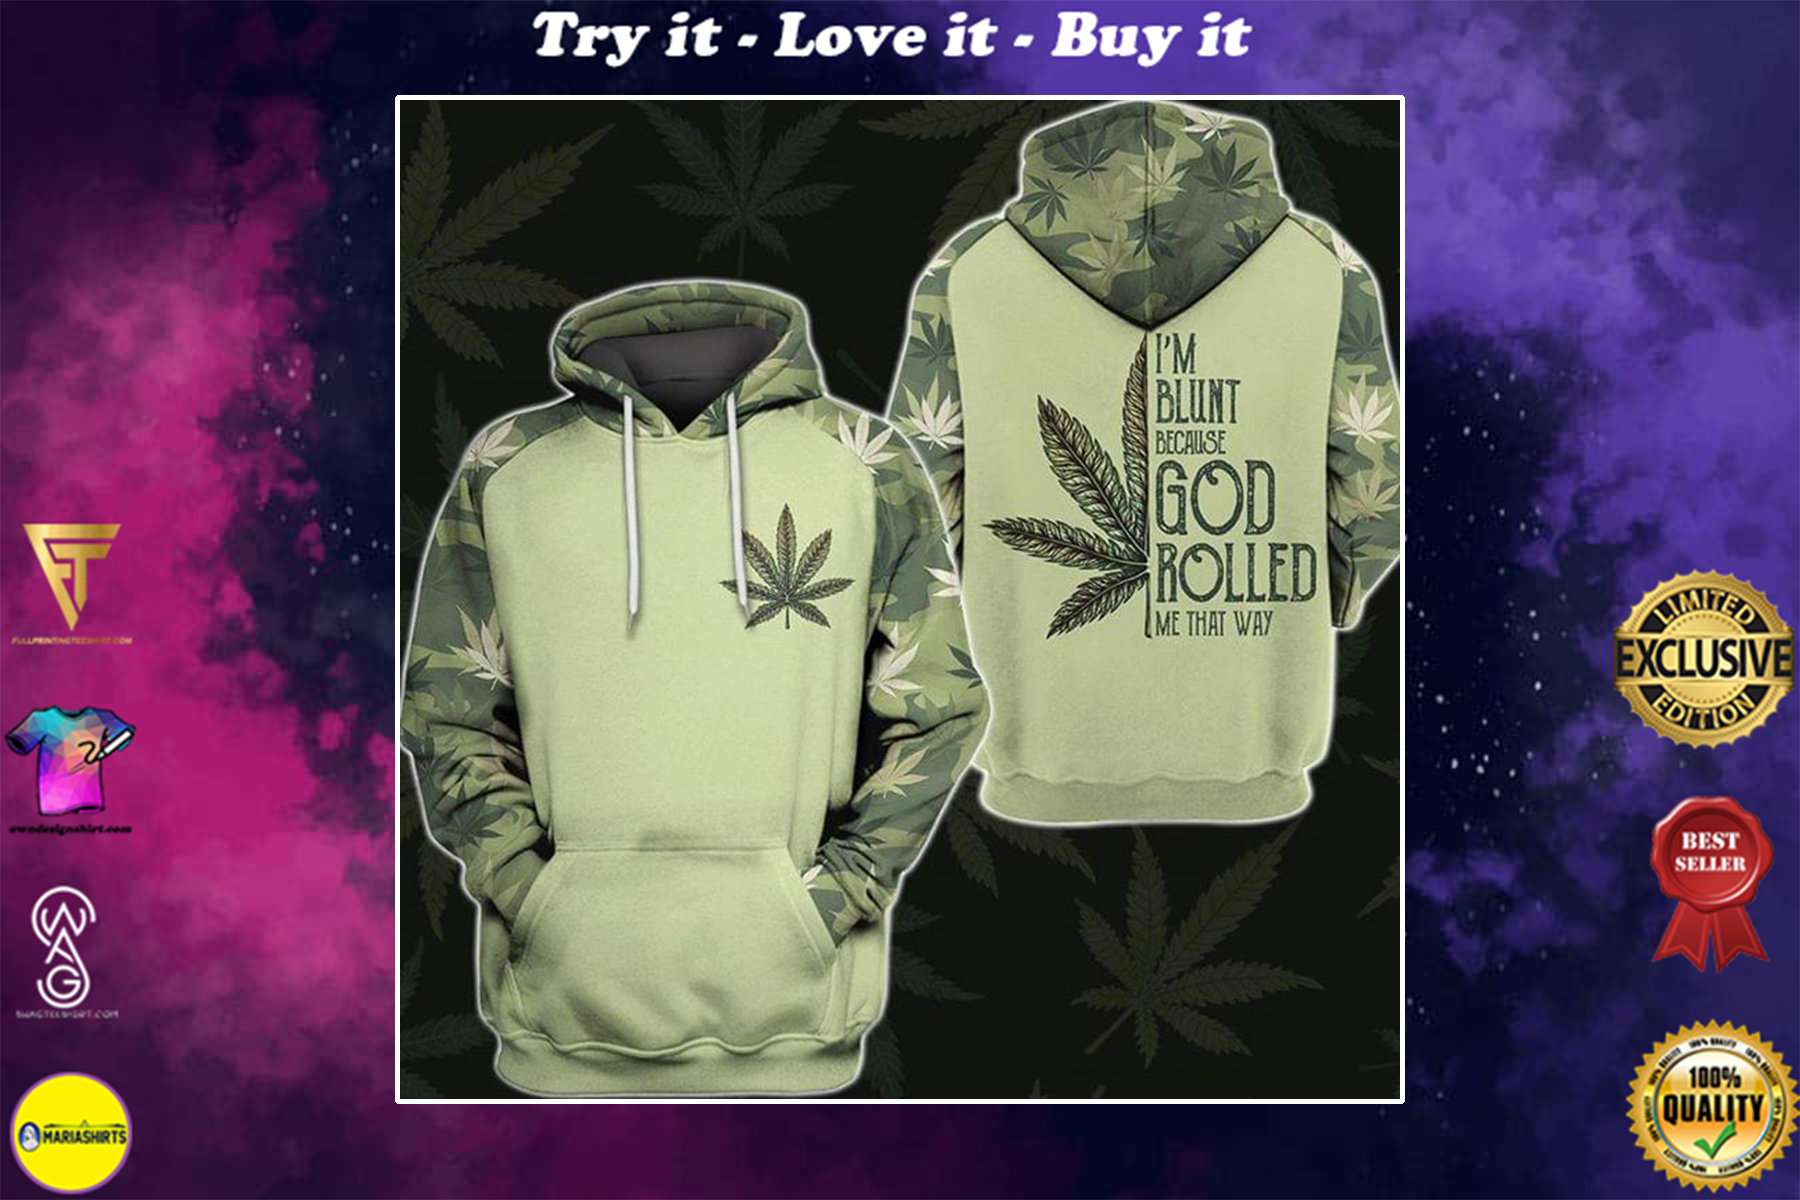 im blunt because God rolled me that way weed leaf full over printed shirt